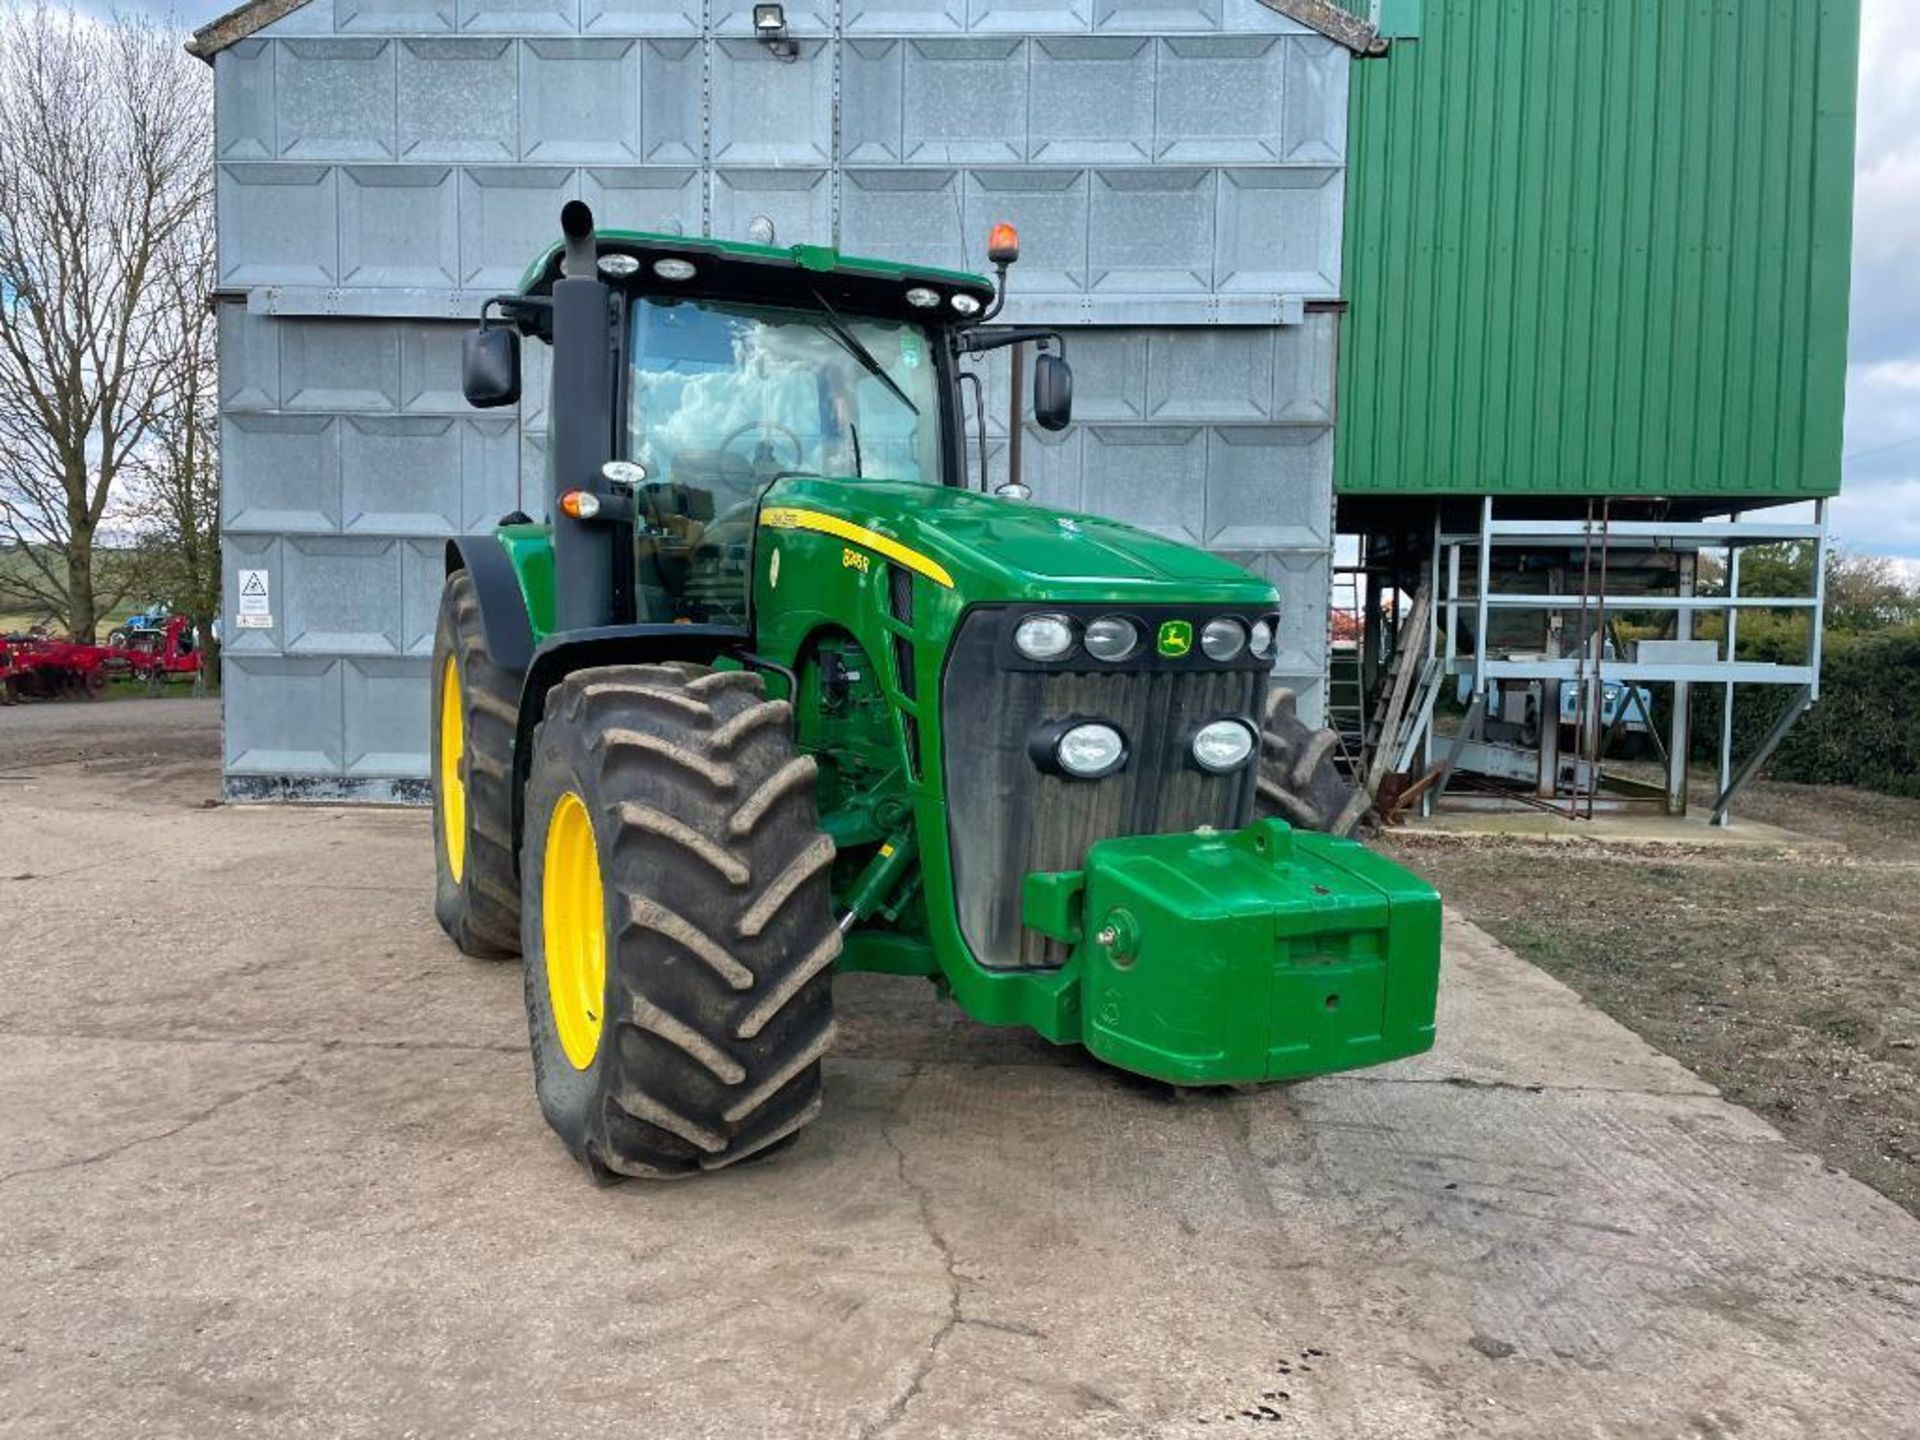 2011 John Deere 8245R 40kph Powershift with 4 electric spools, TLS front suspension and 900kg front - Image 16 of 18